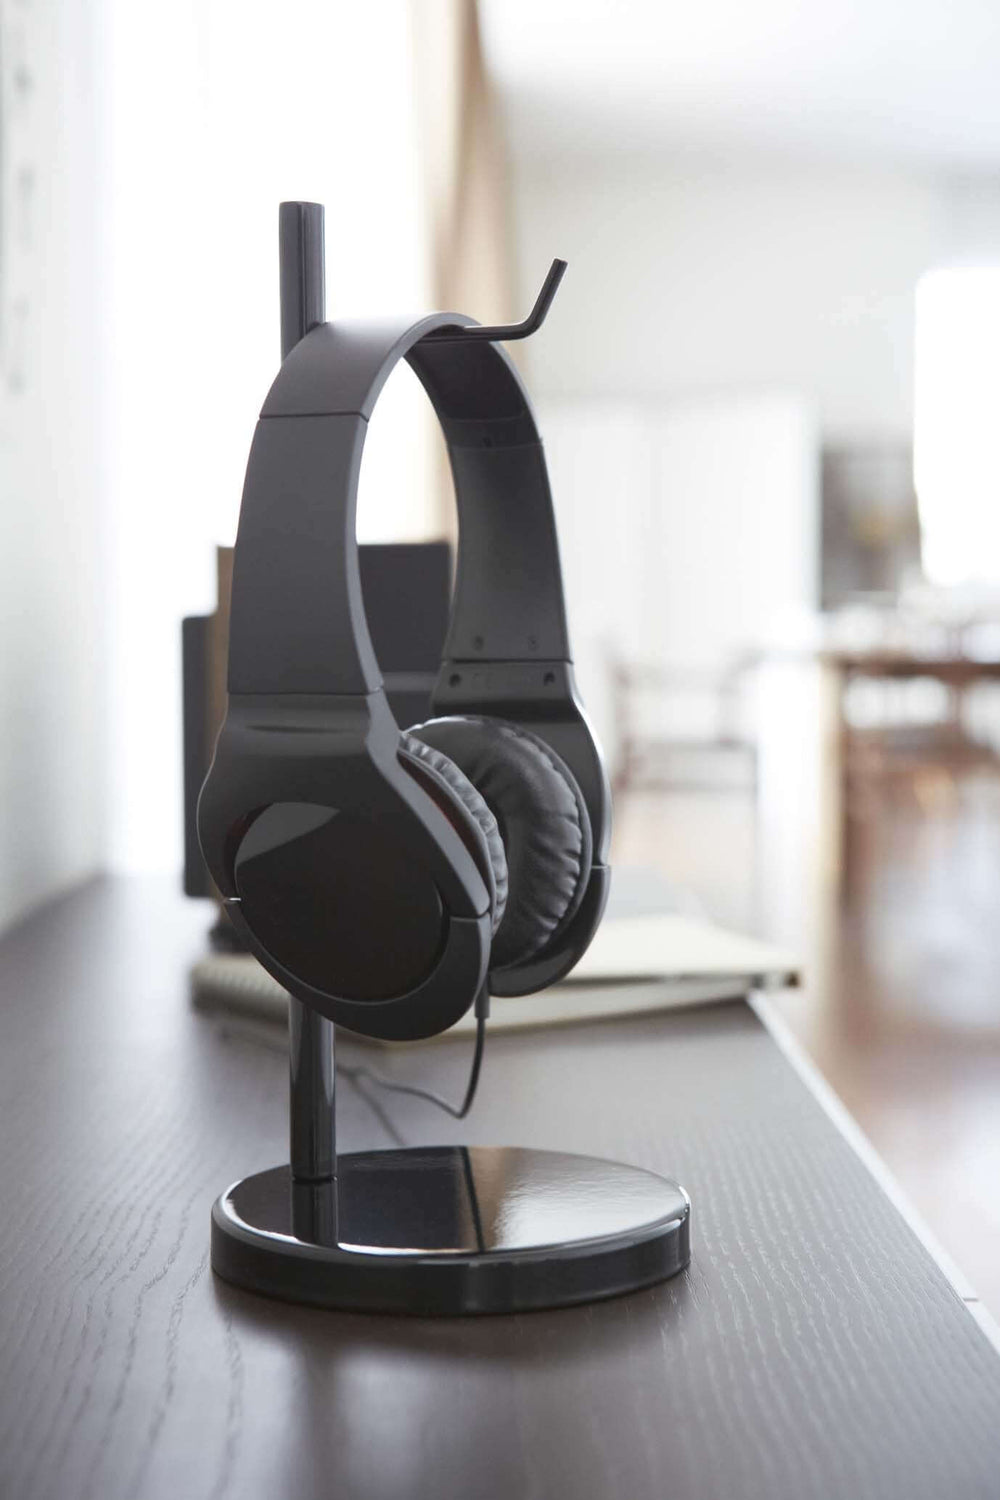 Close look at Yamazaki headphone stand holding headphones.